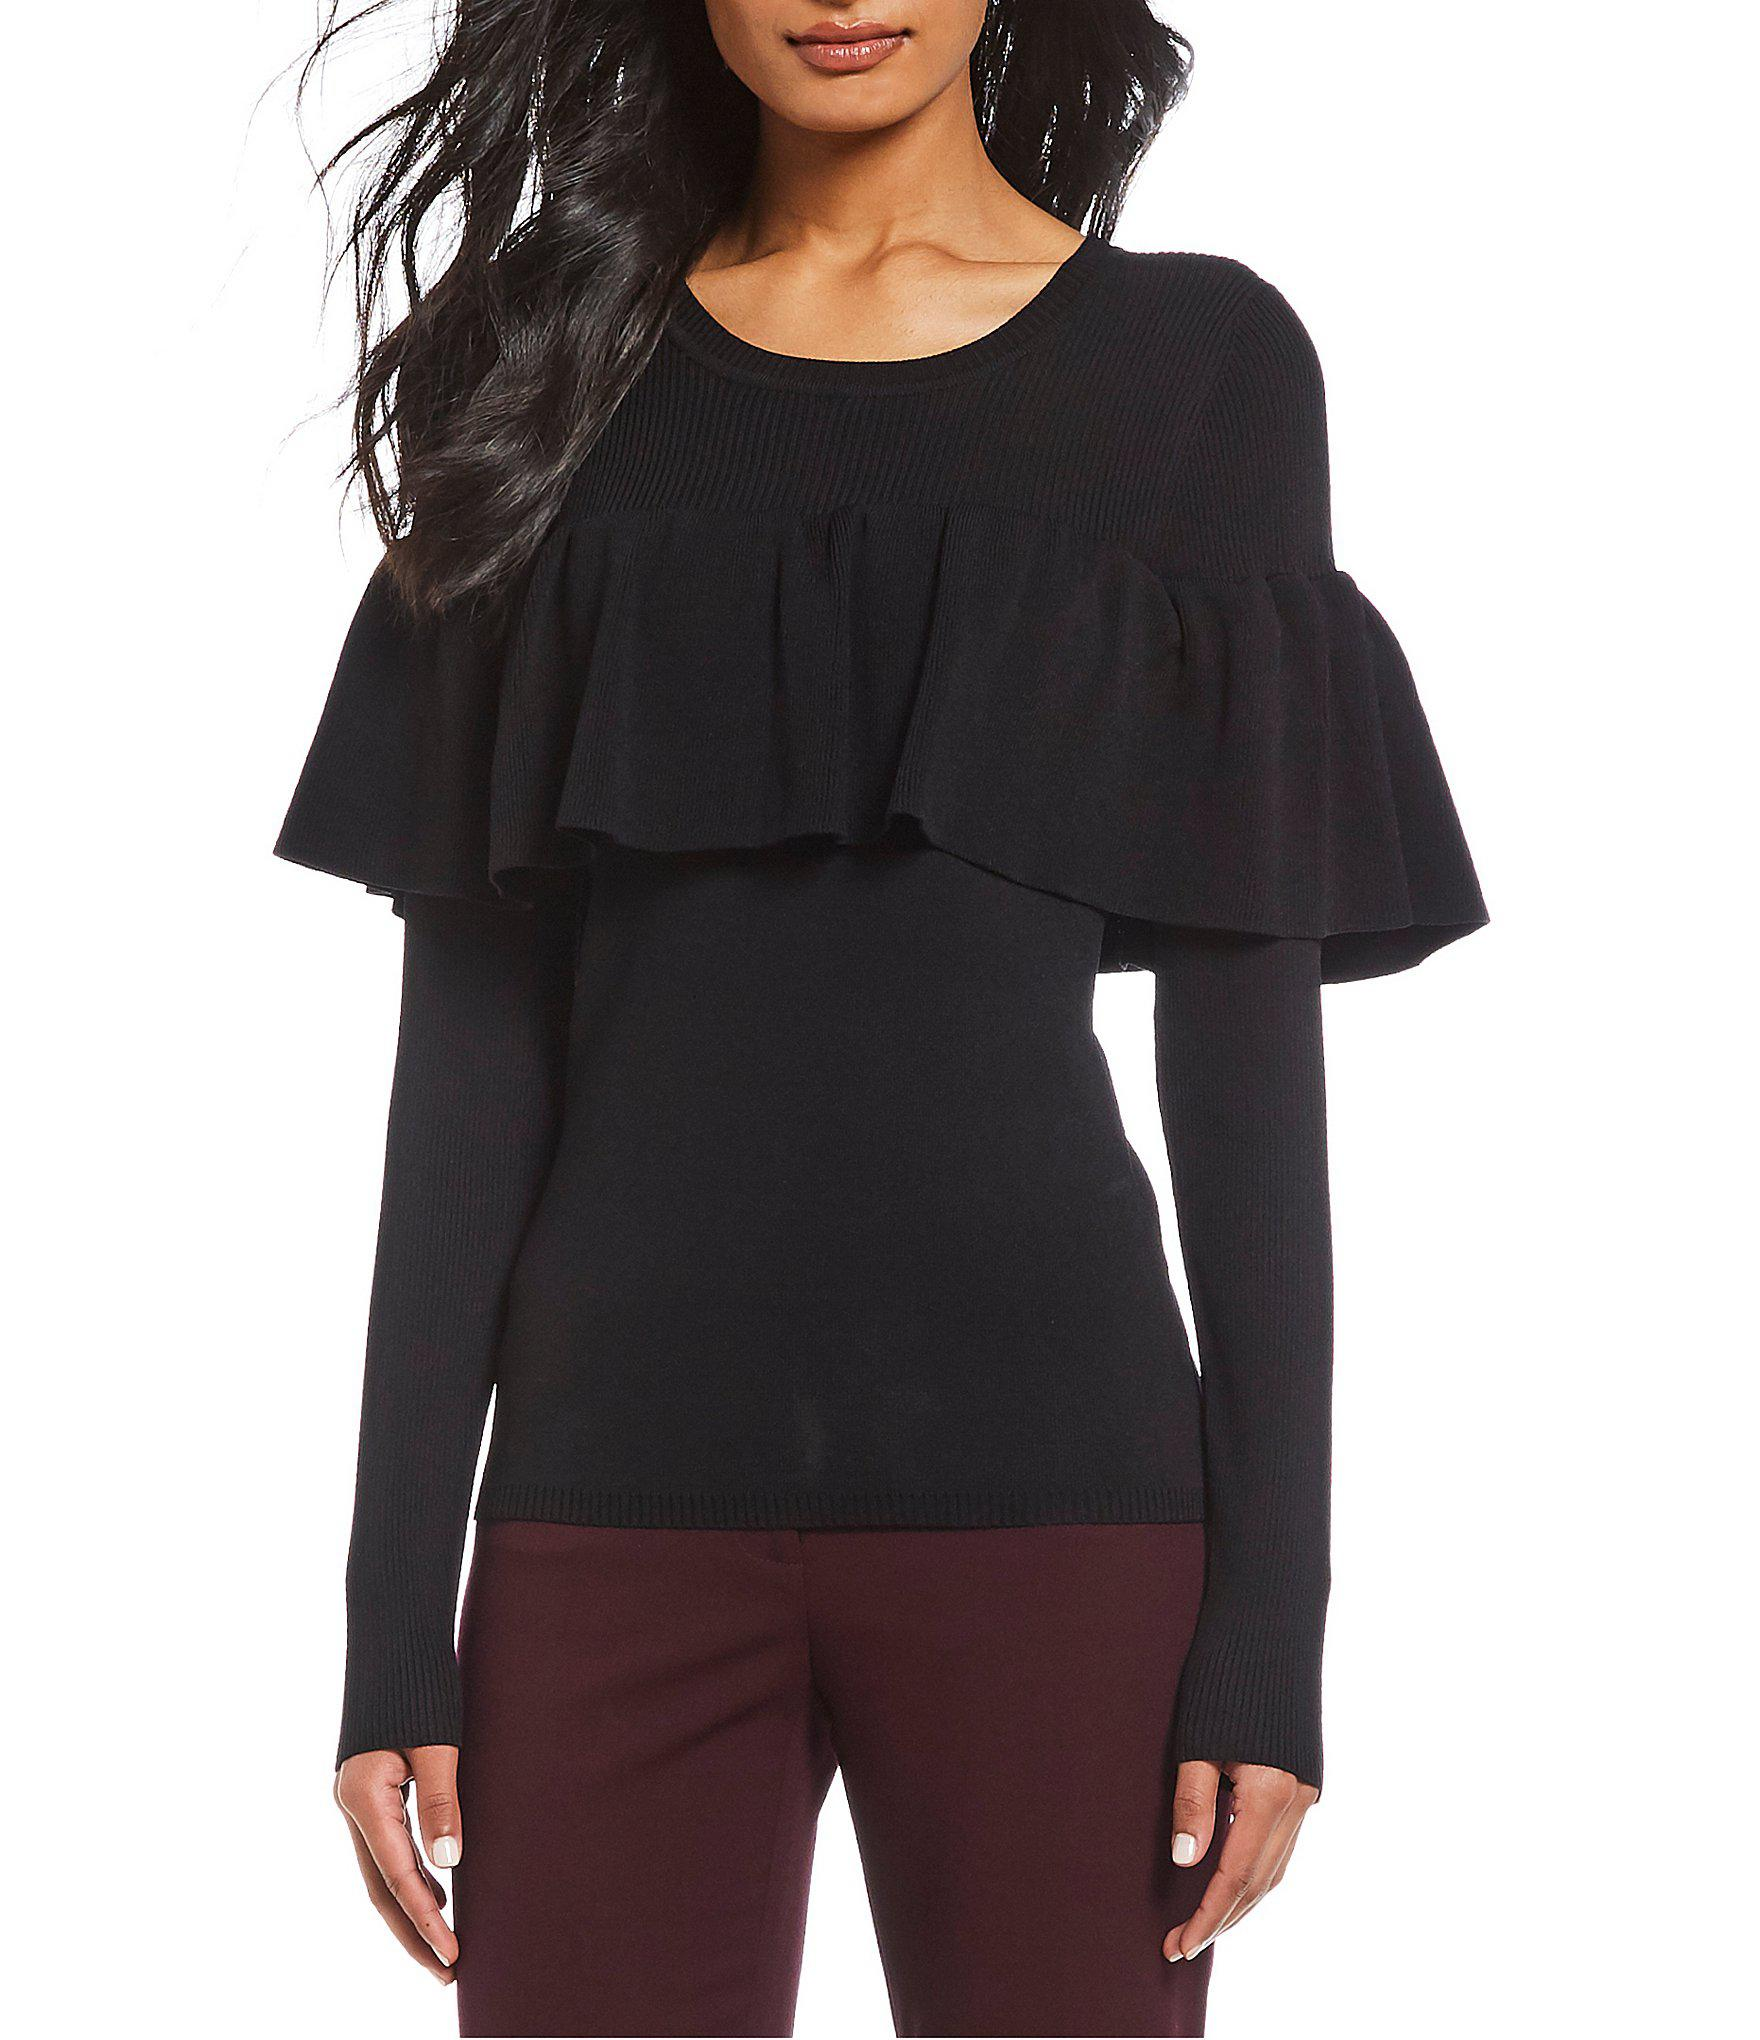 9601f97223f Lyst - Antonio Melani Emmy Ruffle Popover Knit Top in Black